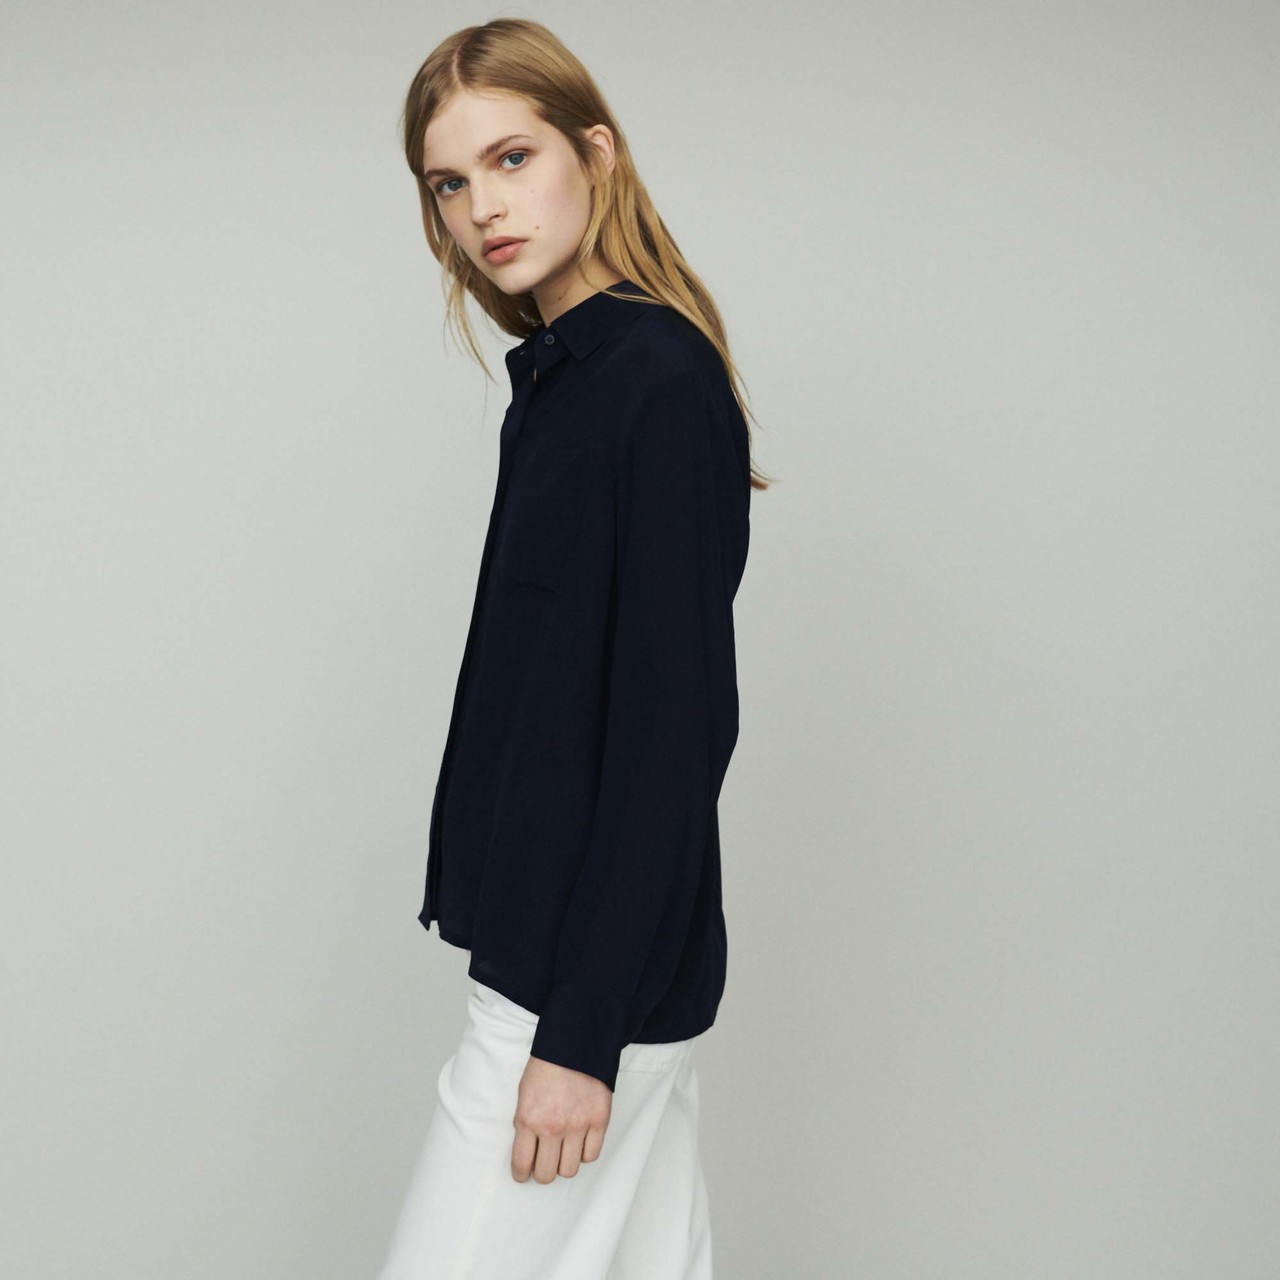 Silk Shirt - Navy